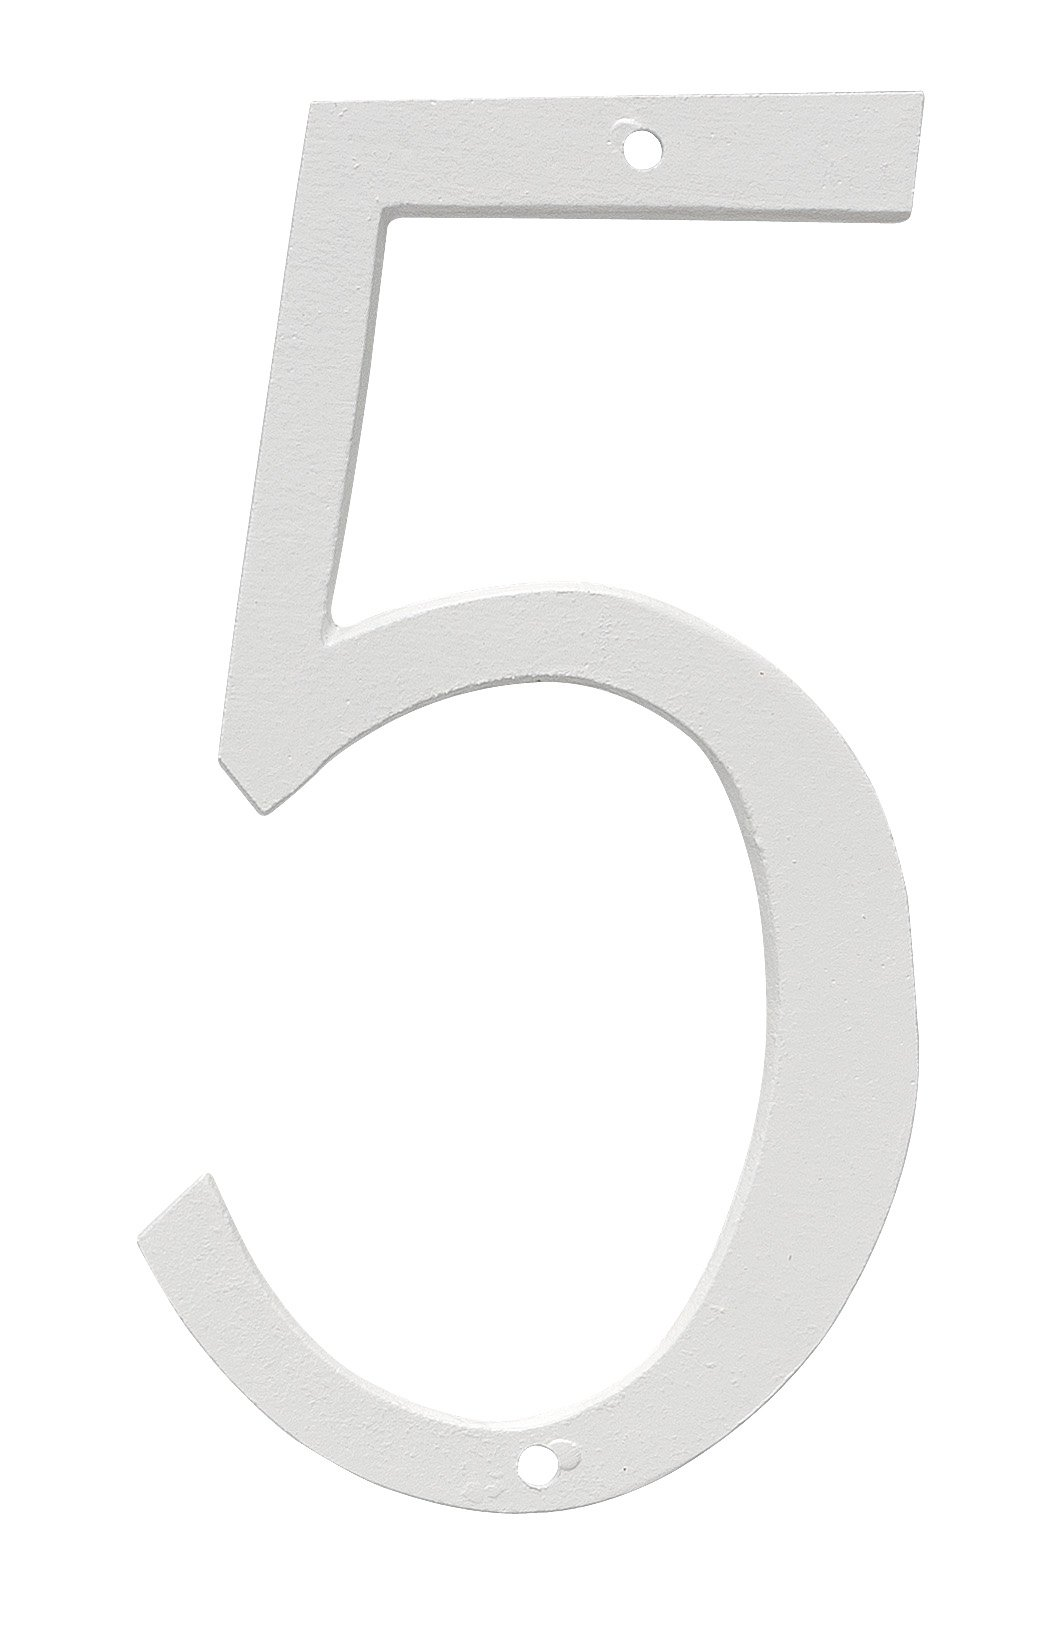 Montague Metal Products CSHN-10-5-W Aluminum House Number 5 Outdoor Plaque, Medium, White